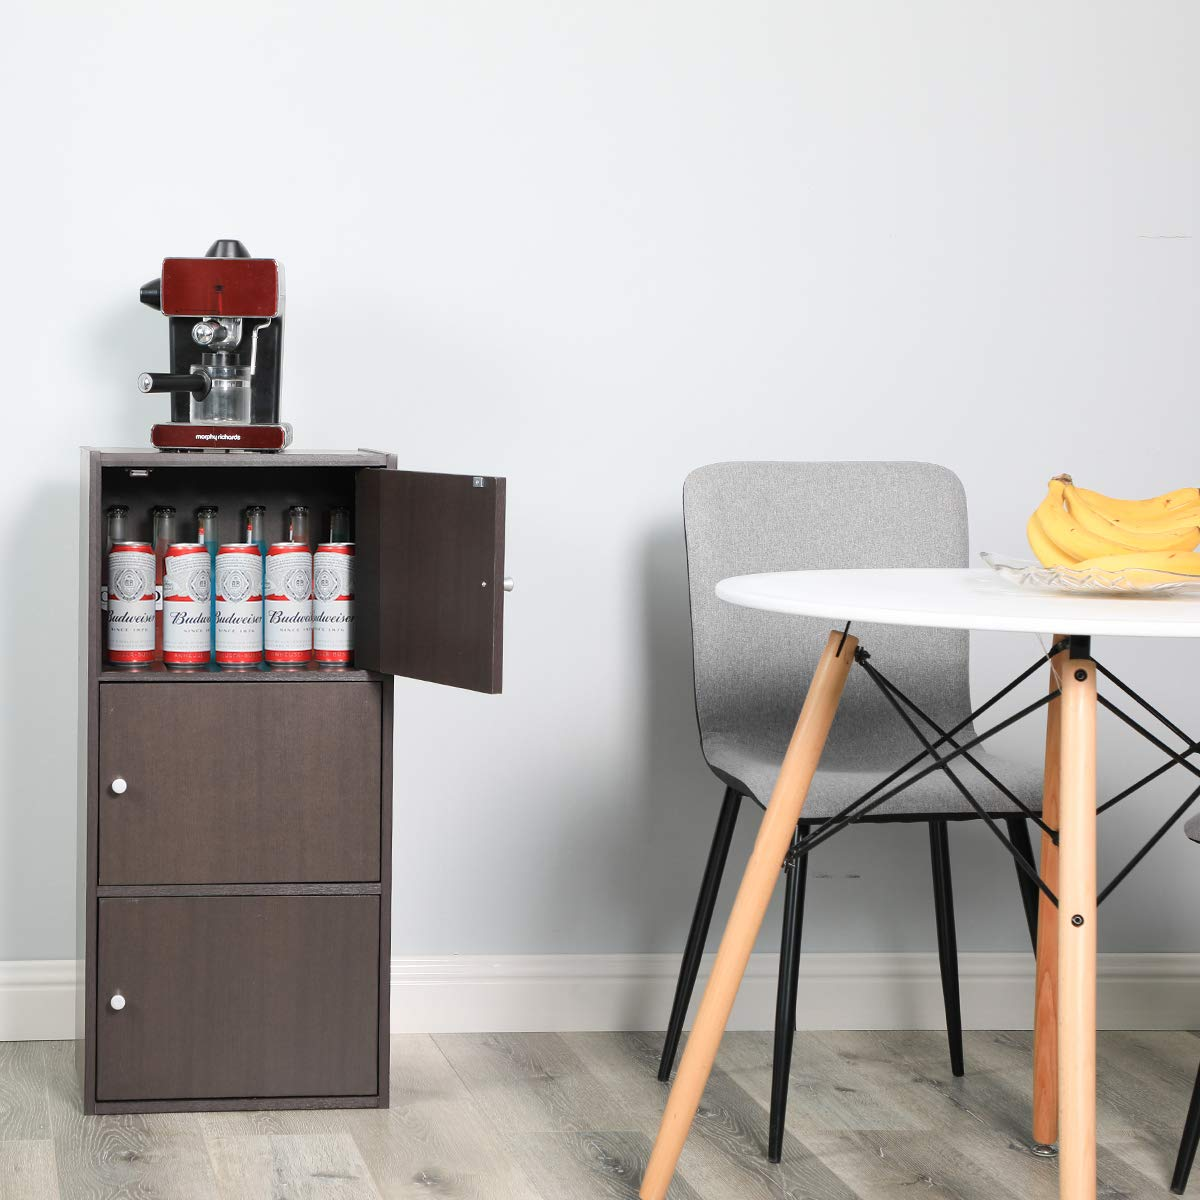 Multifunctional Storage-Cabinet with 3 Magnetic Doors Classic Modern Bookcase Home Office Vertical File Cabinets, Espresso Brown-CAS011 by Coavas (Image #8)